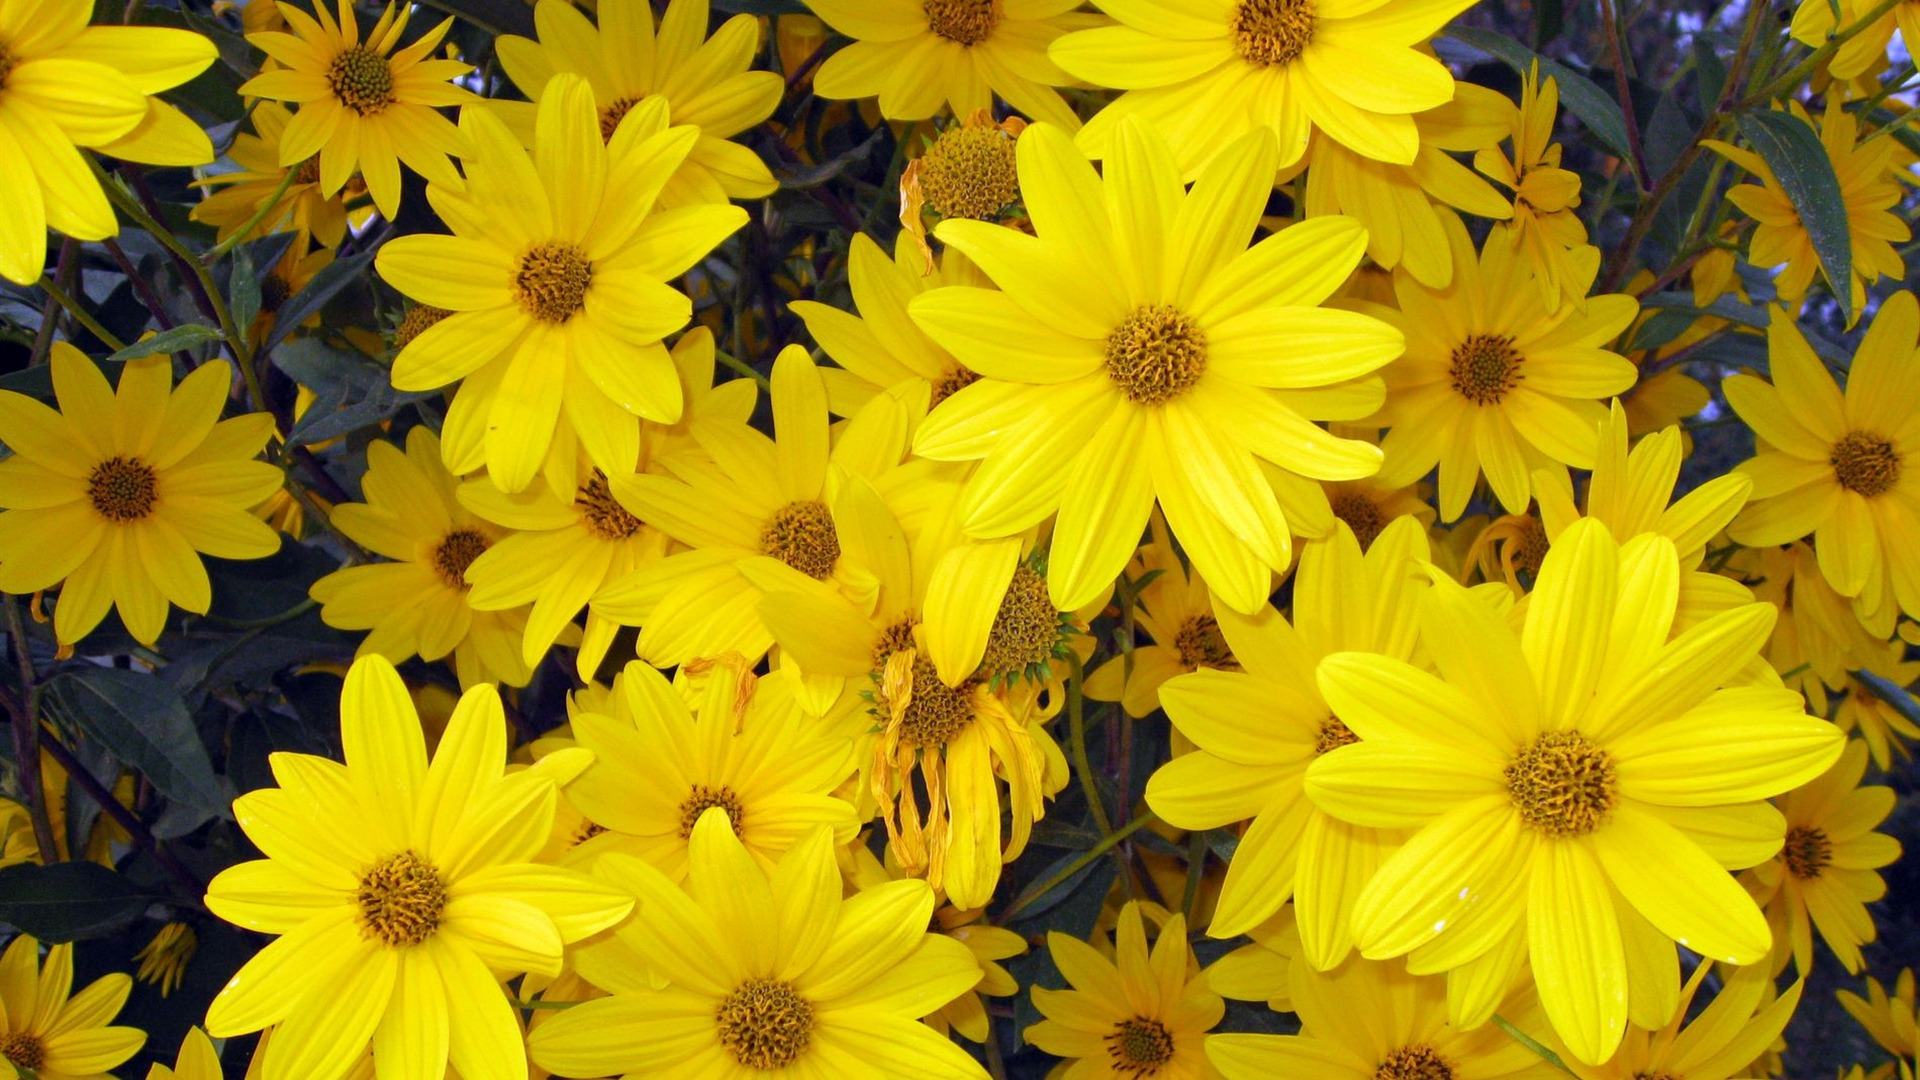 Yellow flowers that bloom in spring 5 free wallpaper - Flowers that bloom from spring to fall ...